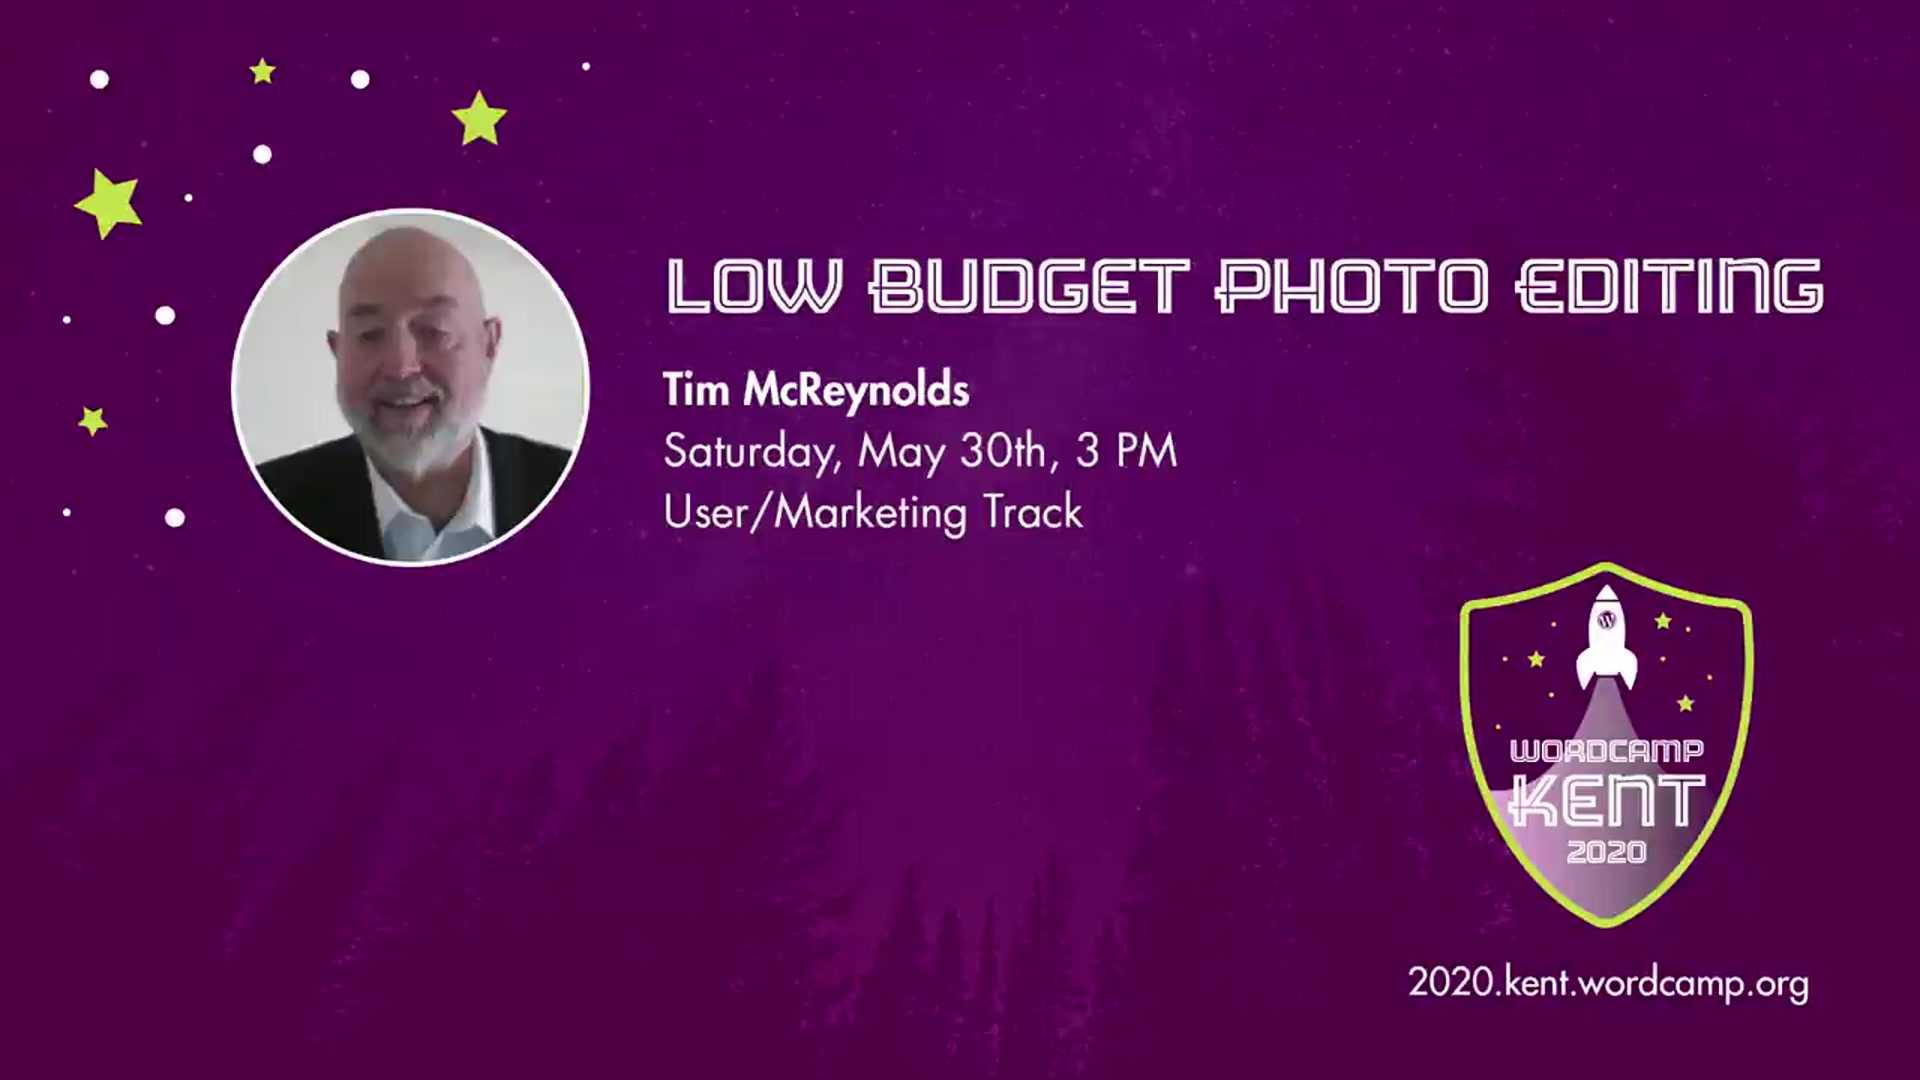 Tim McReynolds: Low Budget Photo Editing